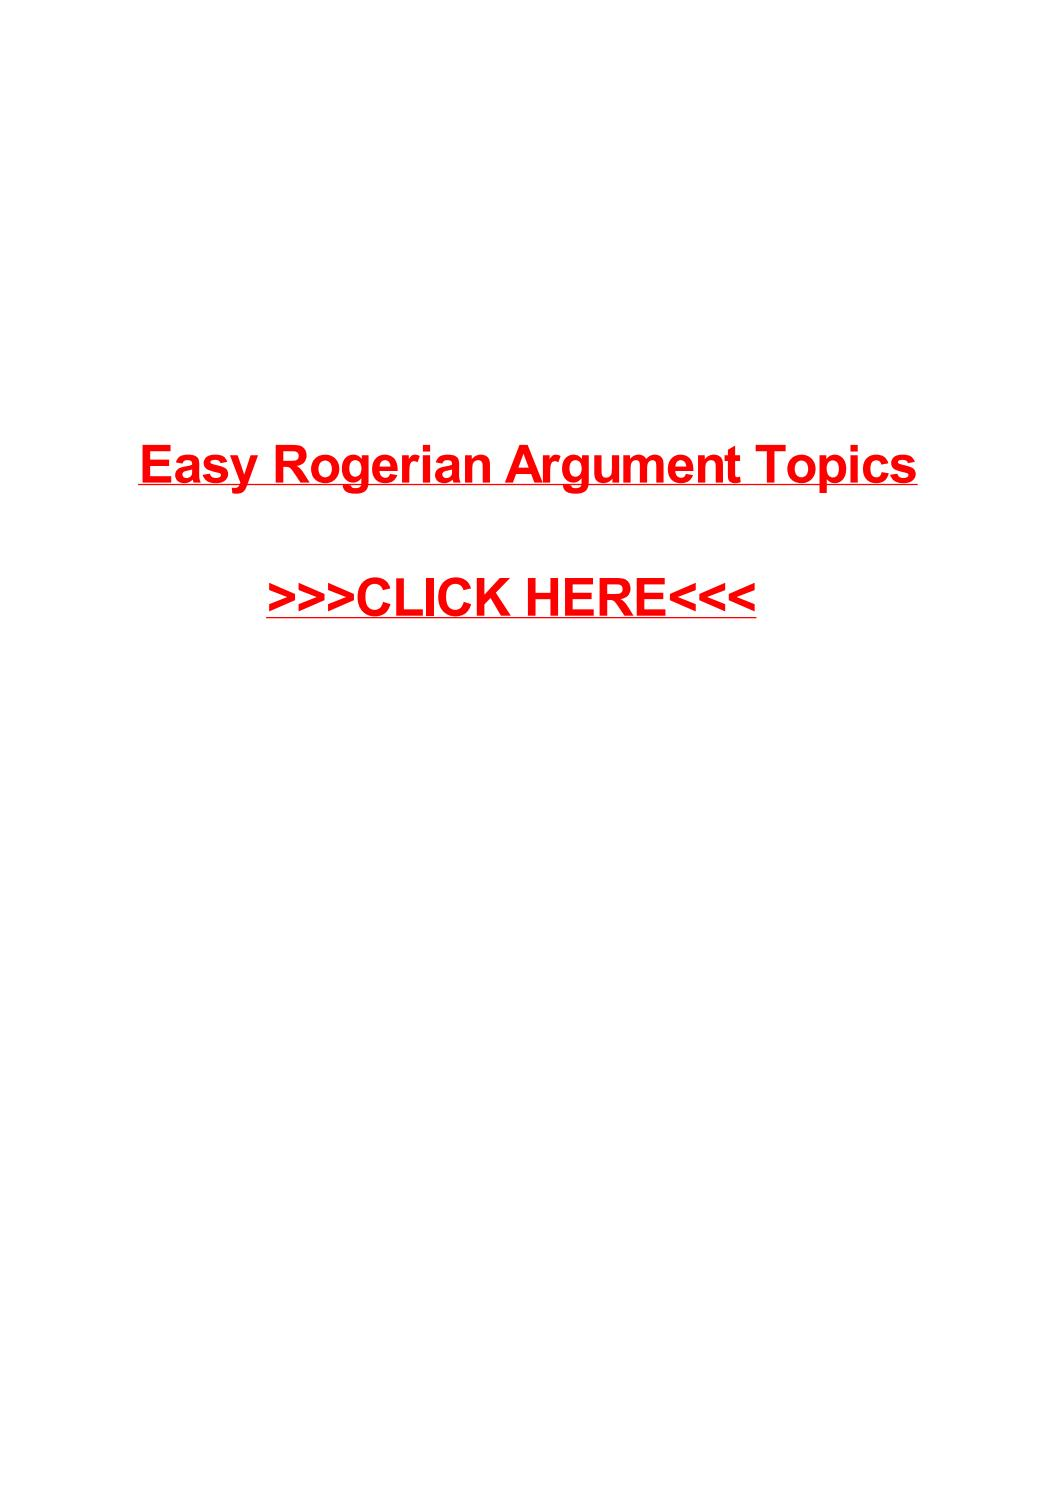 017 Page 1 Essay Example Rogerian Surprising Topics Argument Topic Ideas Method Full